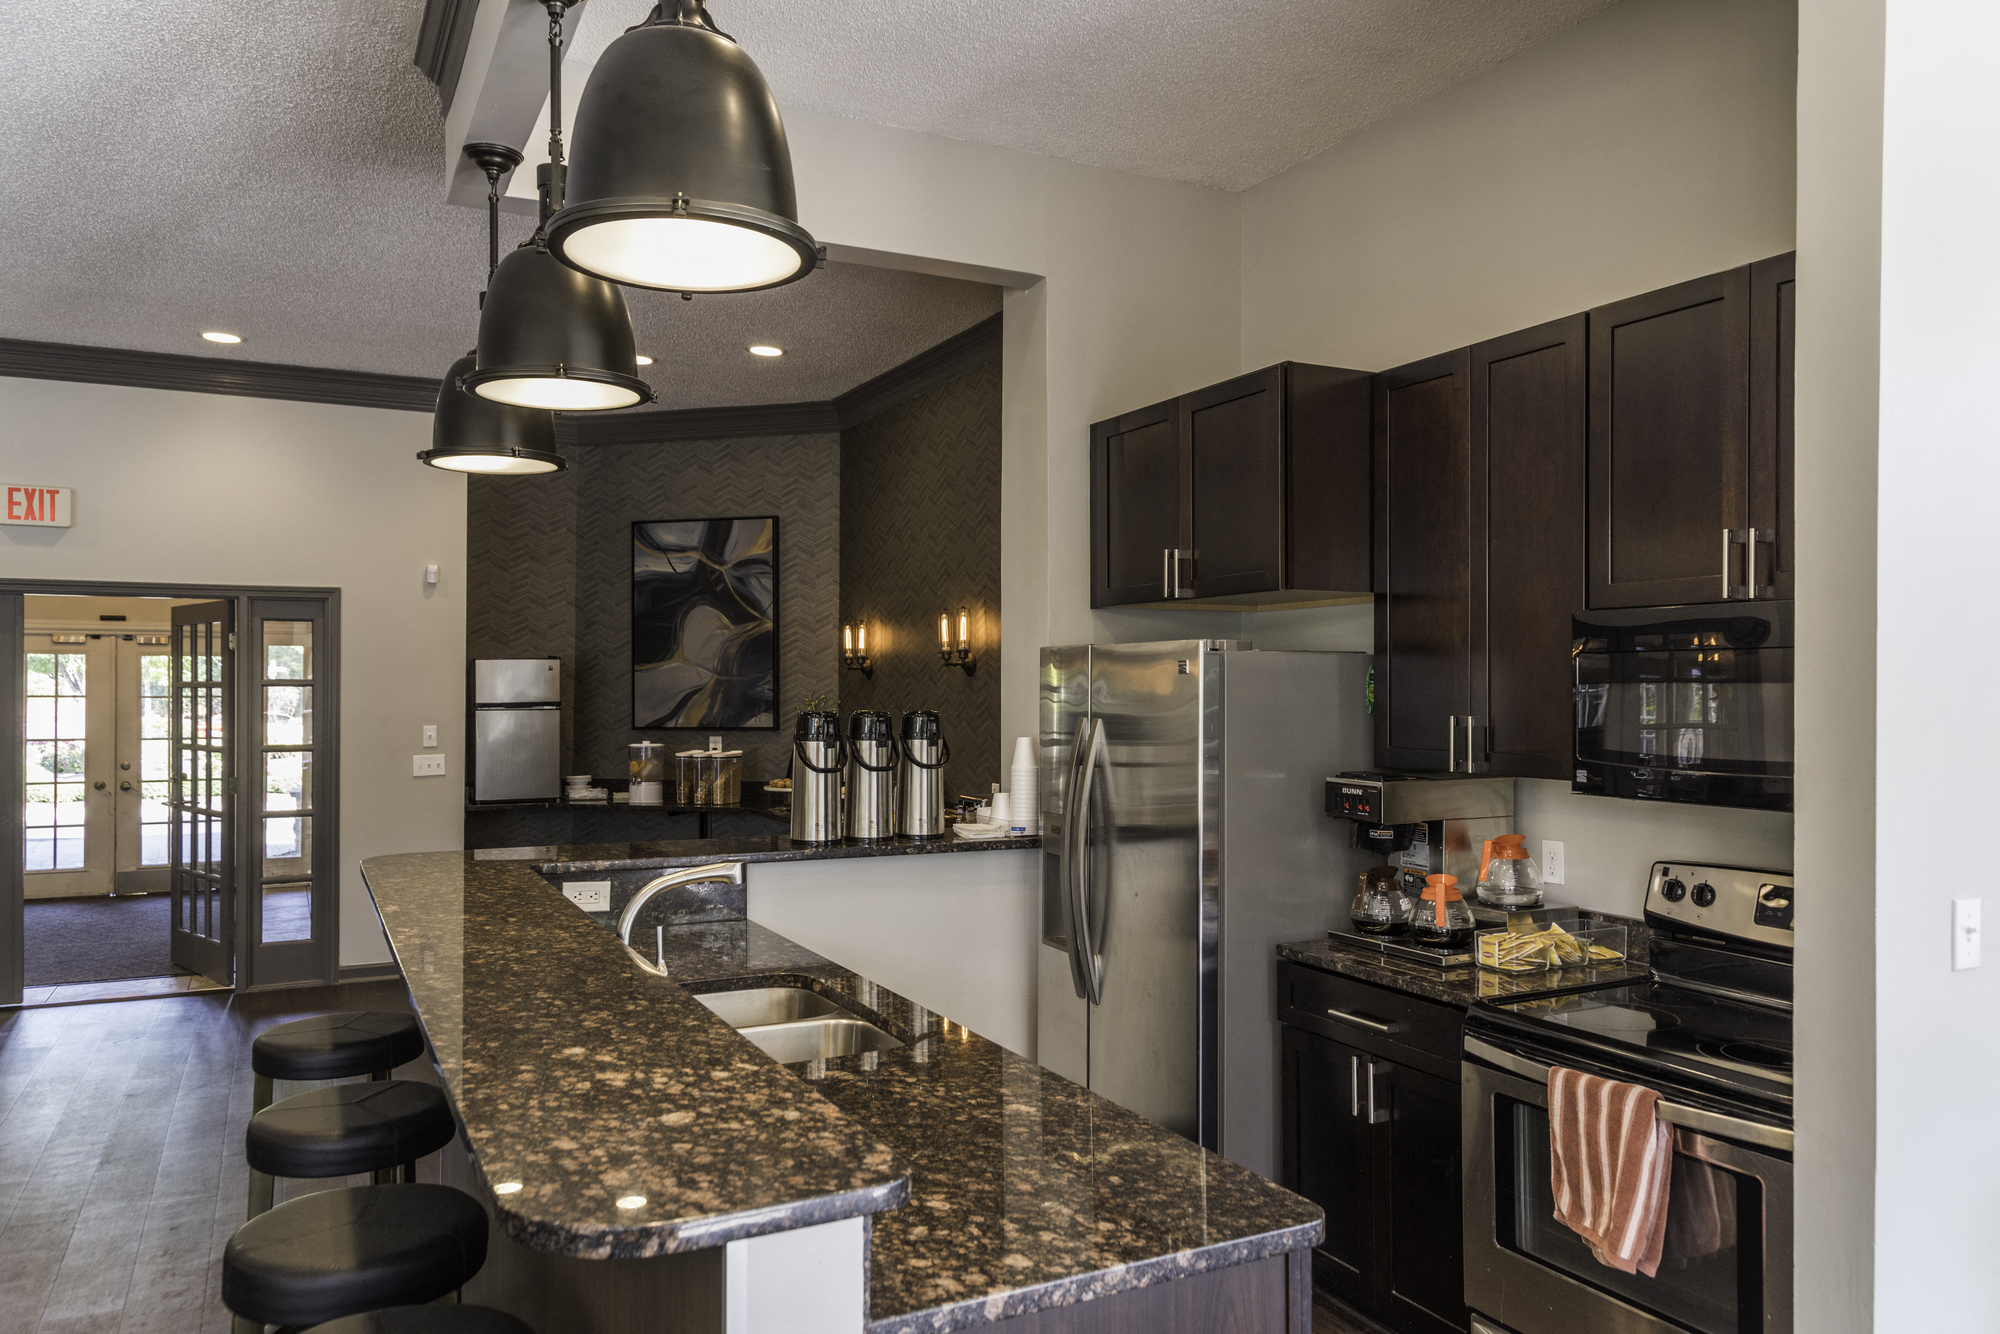 Eat - In Kitchens at Fairlane Woods Apartments, Dearborn, 48126